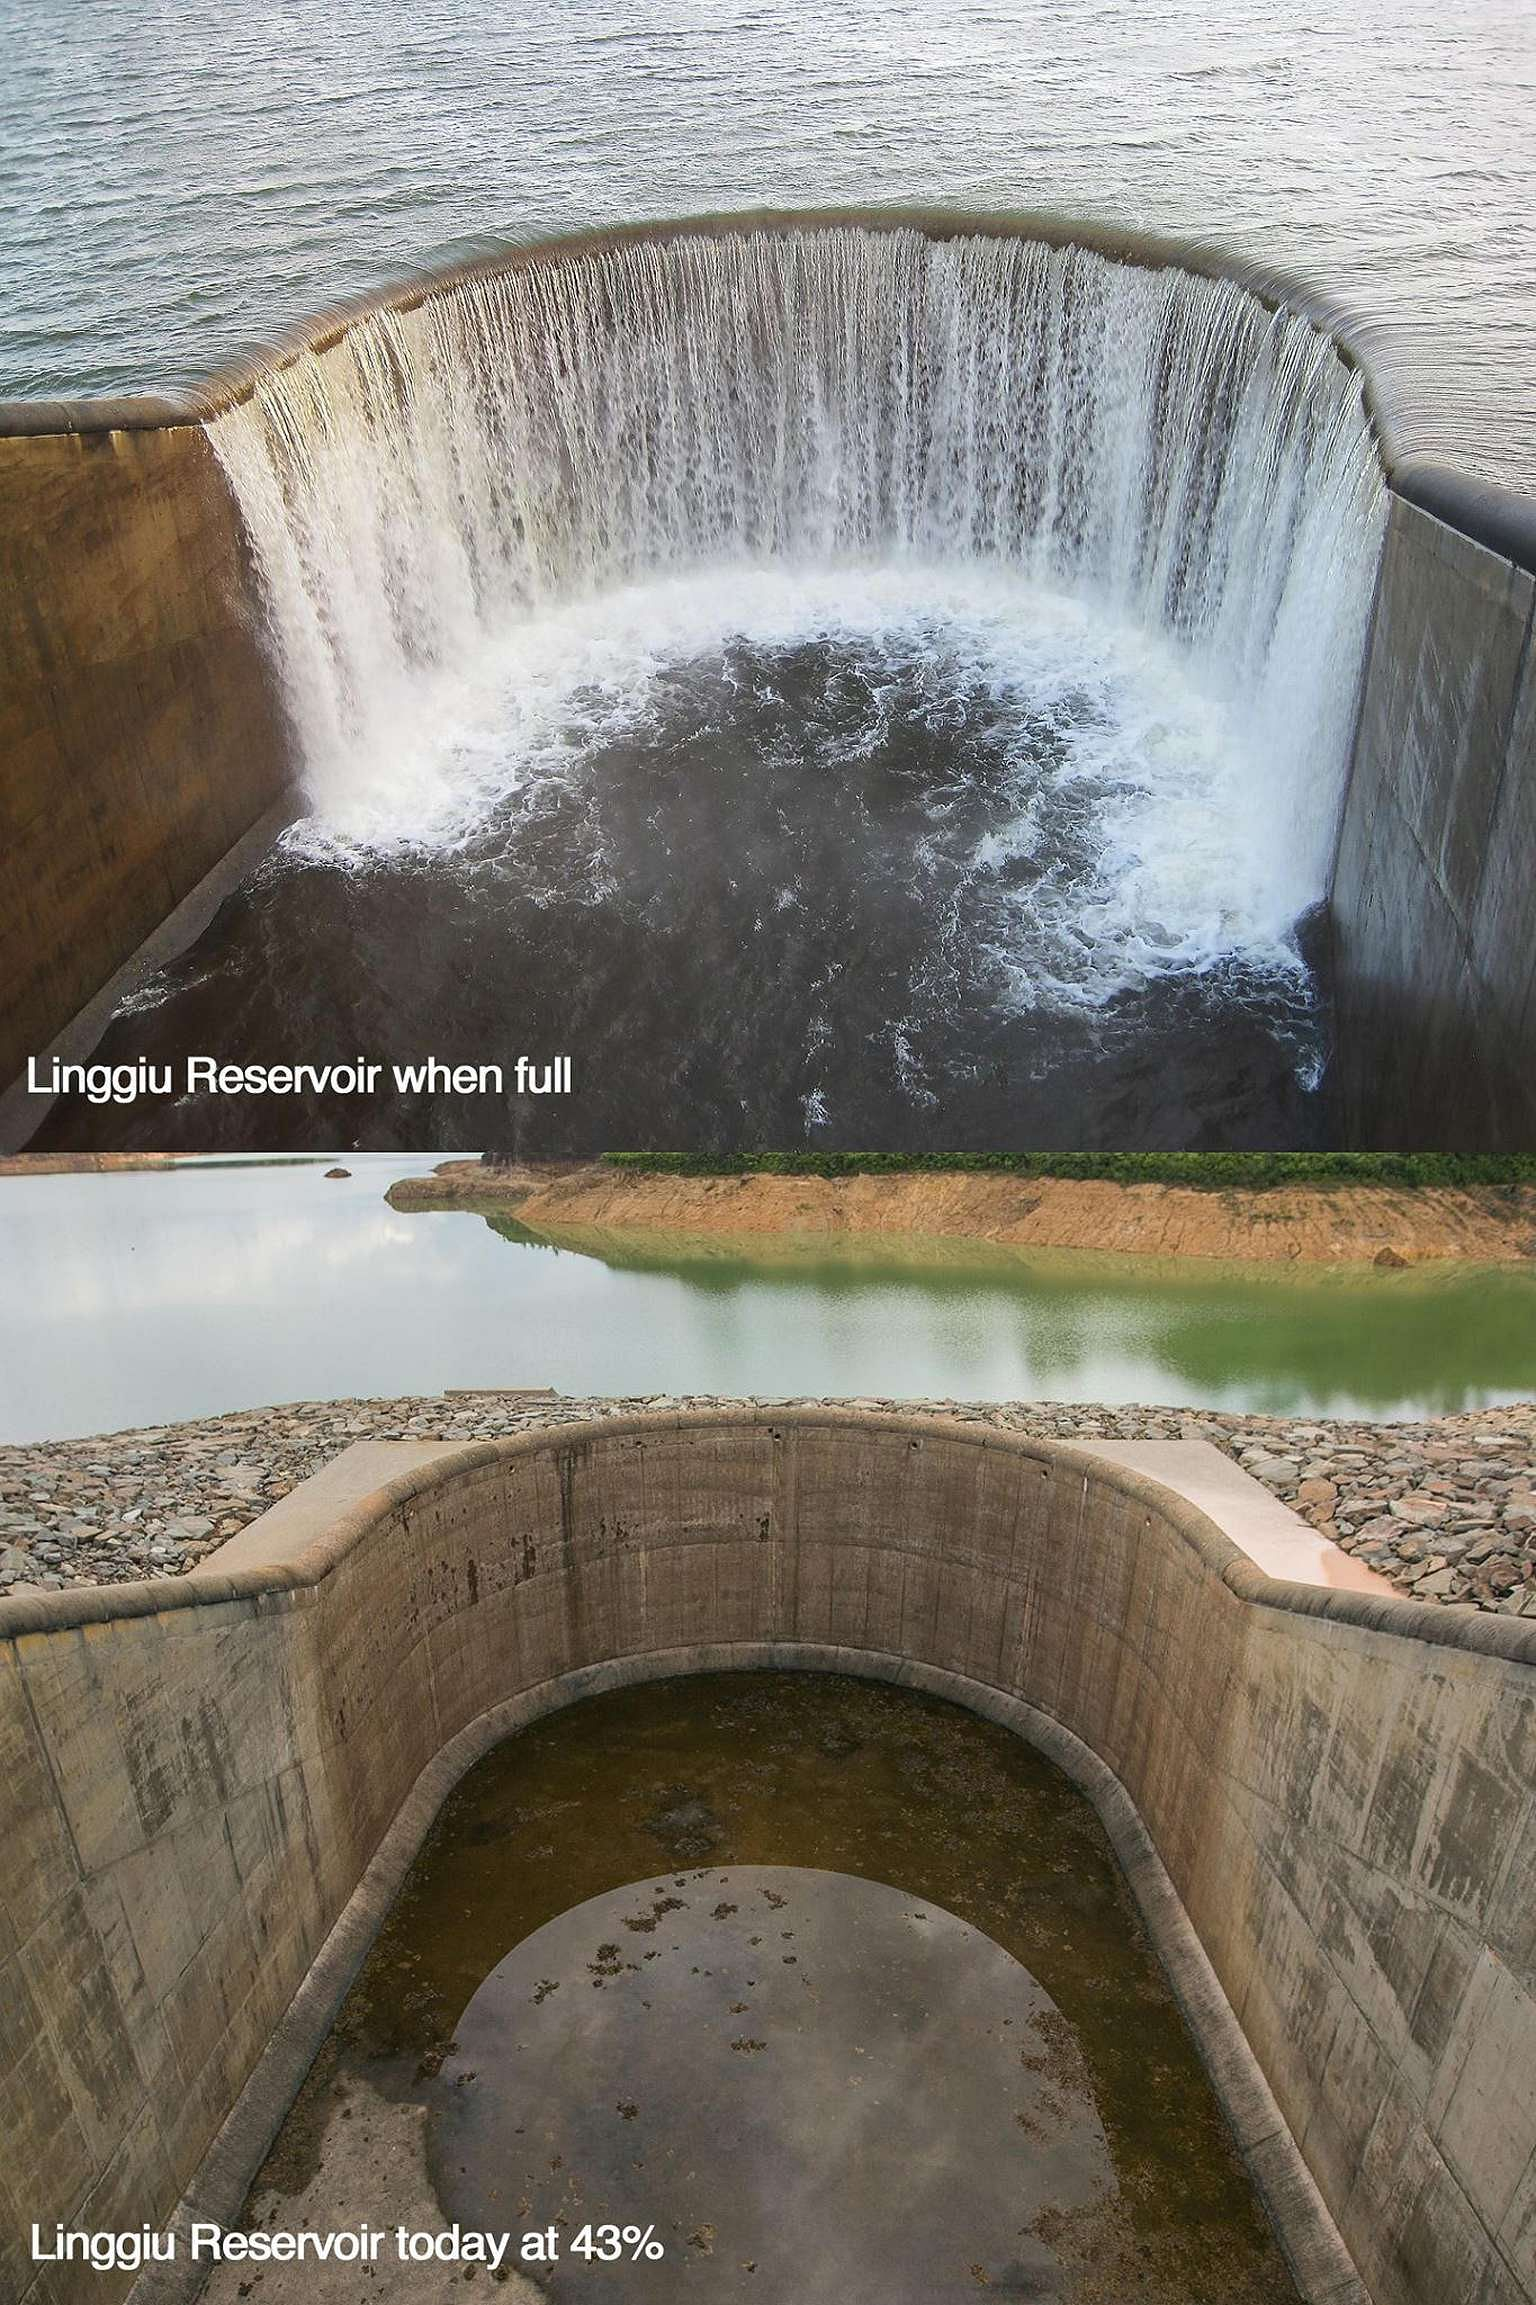 In photos posted last Friday, the water level at the Linggiu Reservoir was shown to have dropped significantly.